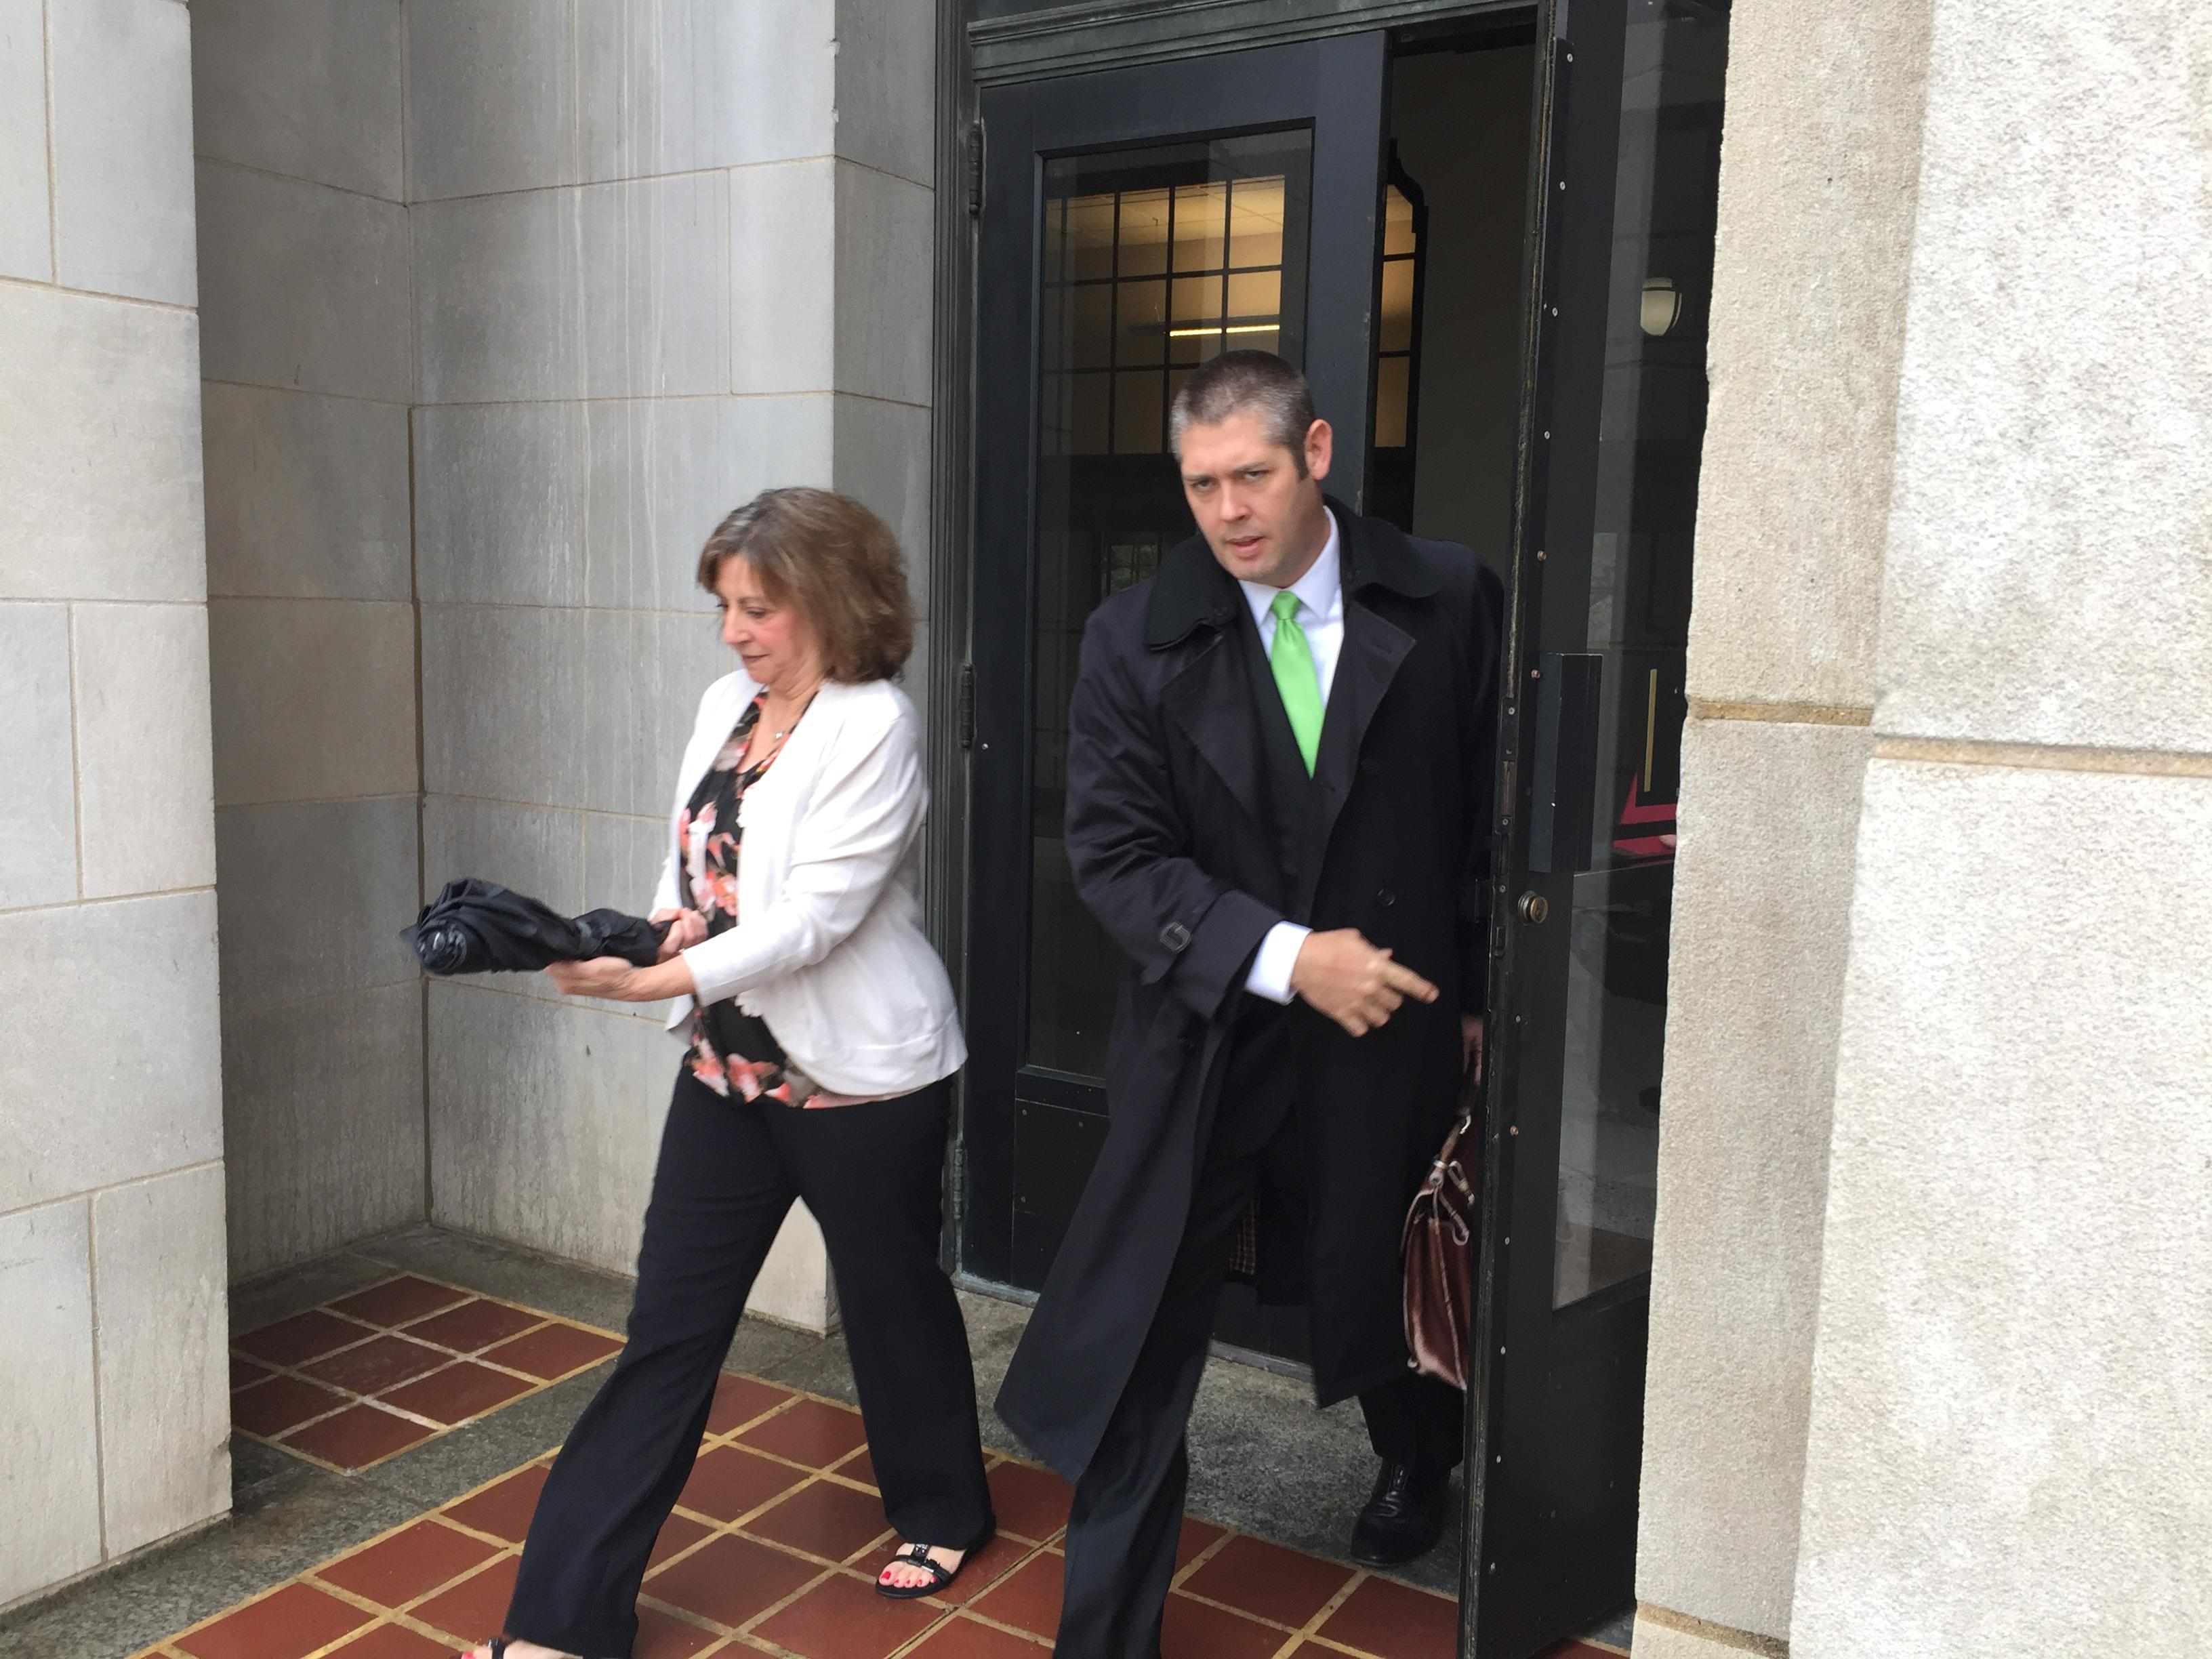 Wanda Greene exiting federal court on Monday, April 23, 2018.{ } (Photo credit: WLOS Staff)